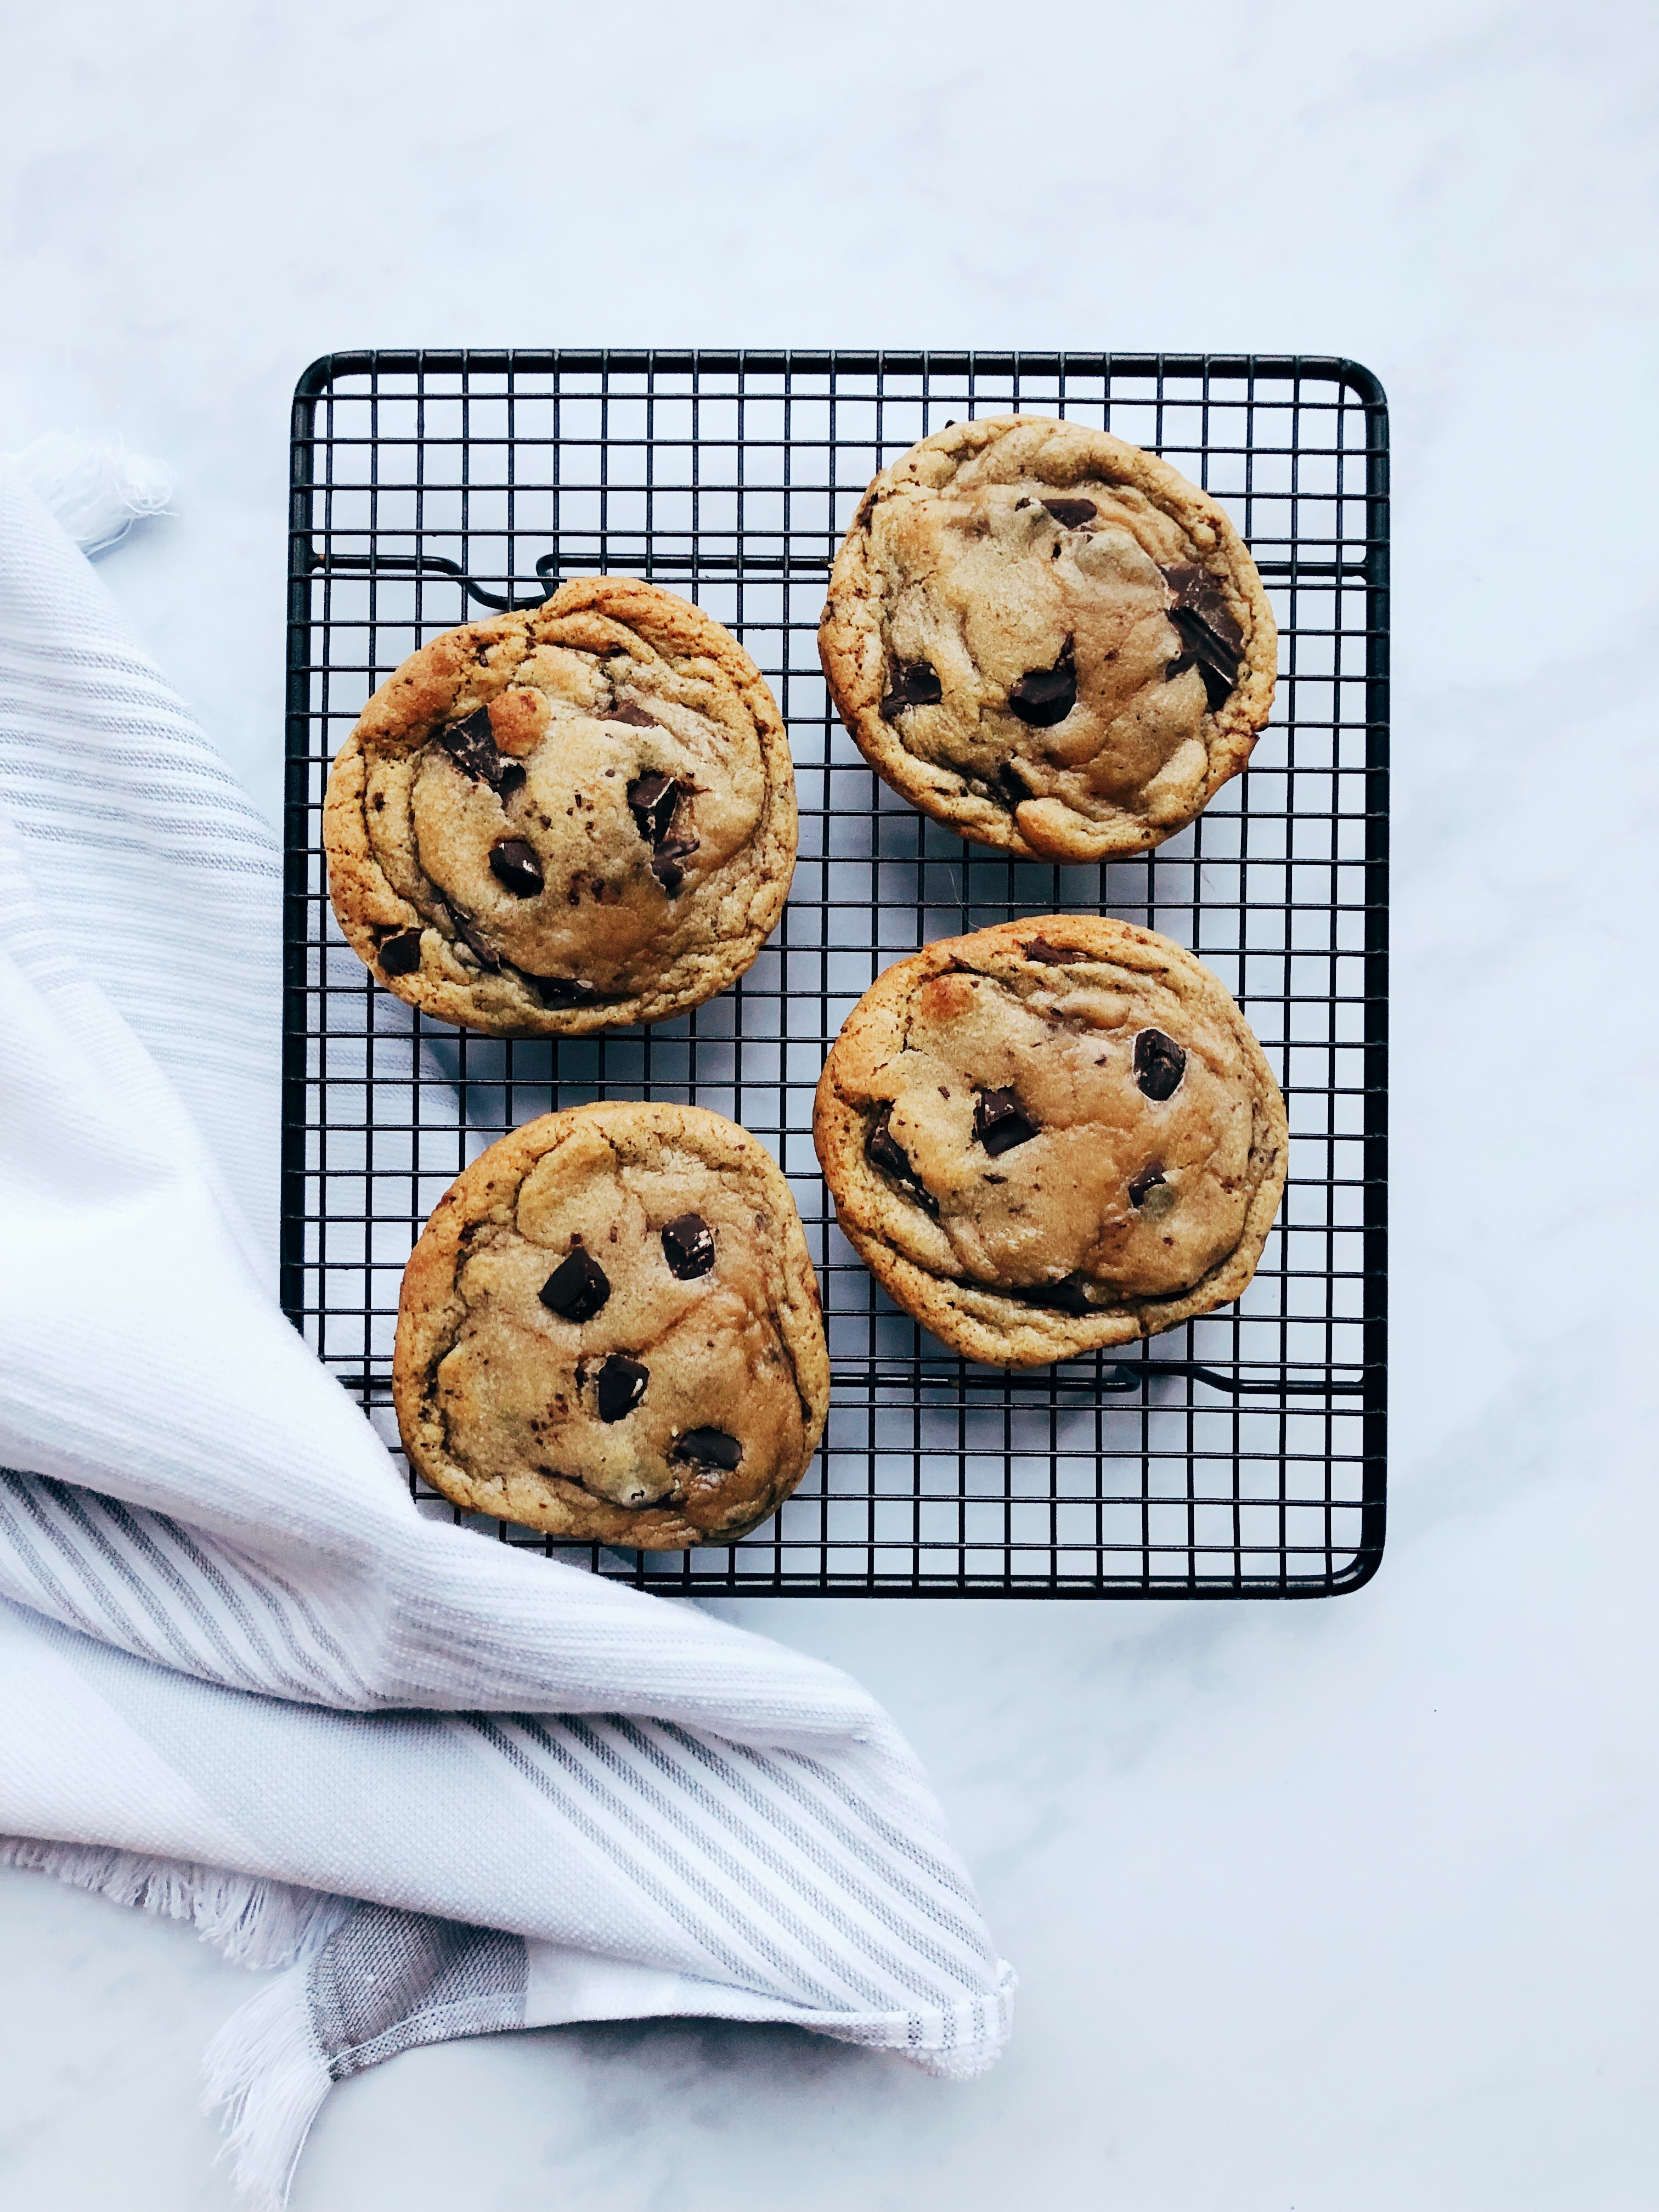 Cookies on a wire cooling rack with teatowel